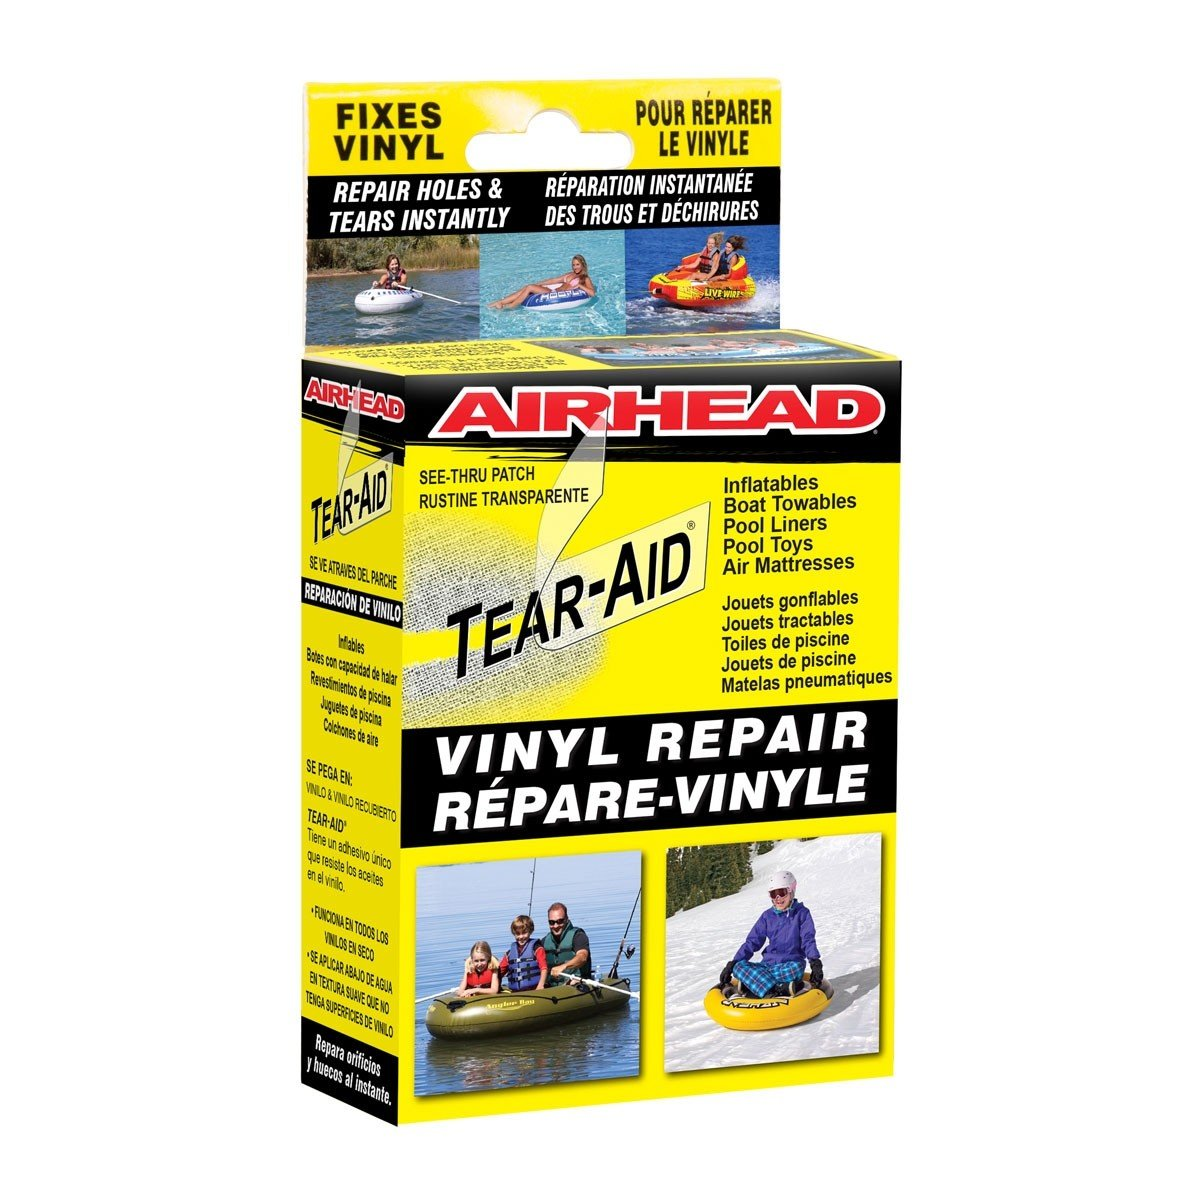 Kwik Tek Orange Cycle Parts Tear Aid Type B Vinyl Repair Patch Kit for Inflatables, Boat Towables, Pool Liners, Air Mattress and more by Airhead AHTR-1B